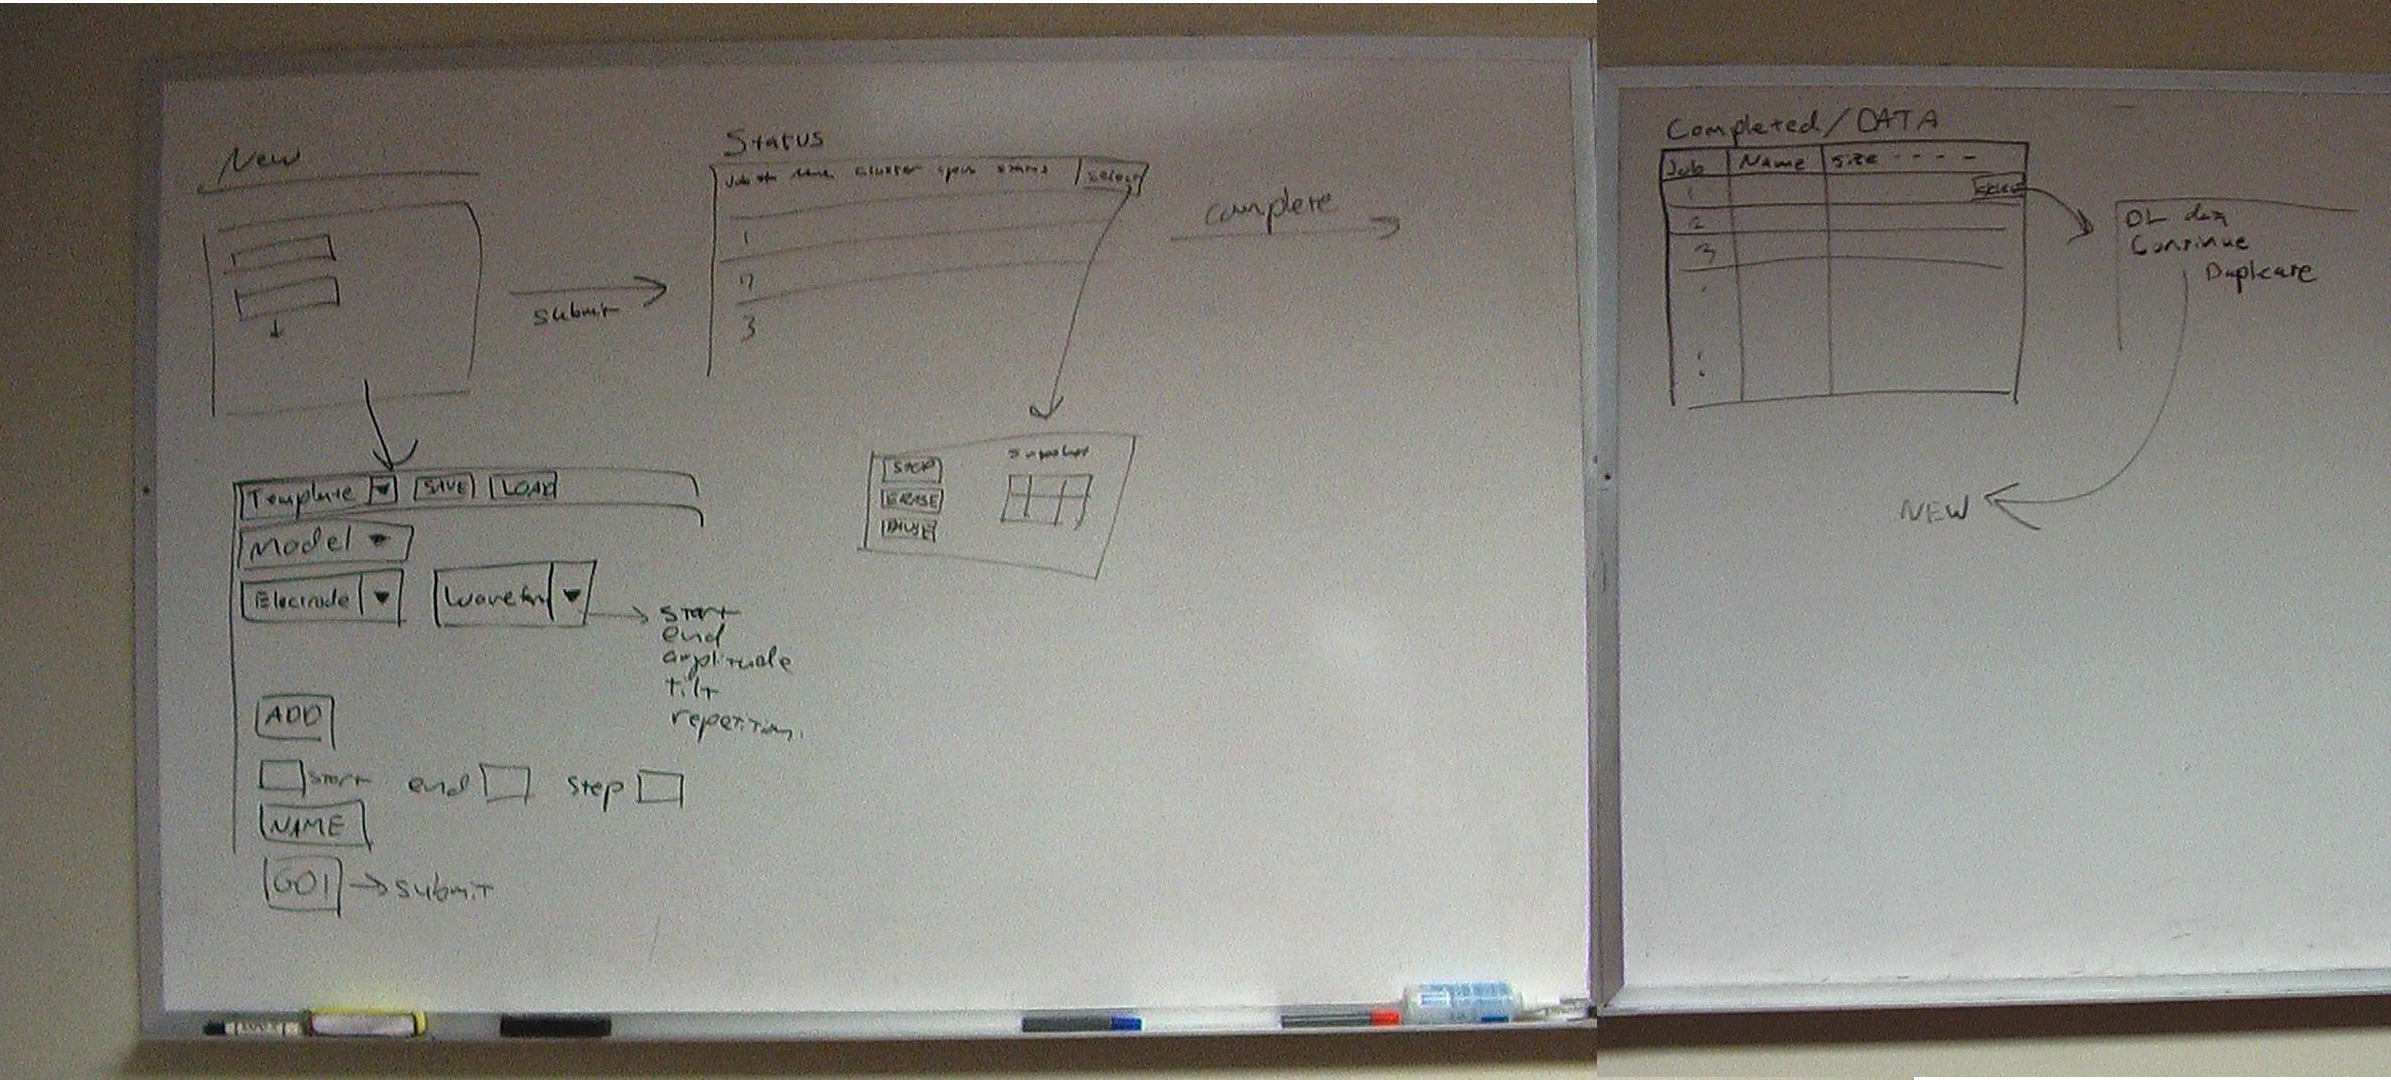 VRE UI storyboarding at the Trayanova Lab